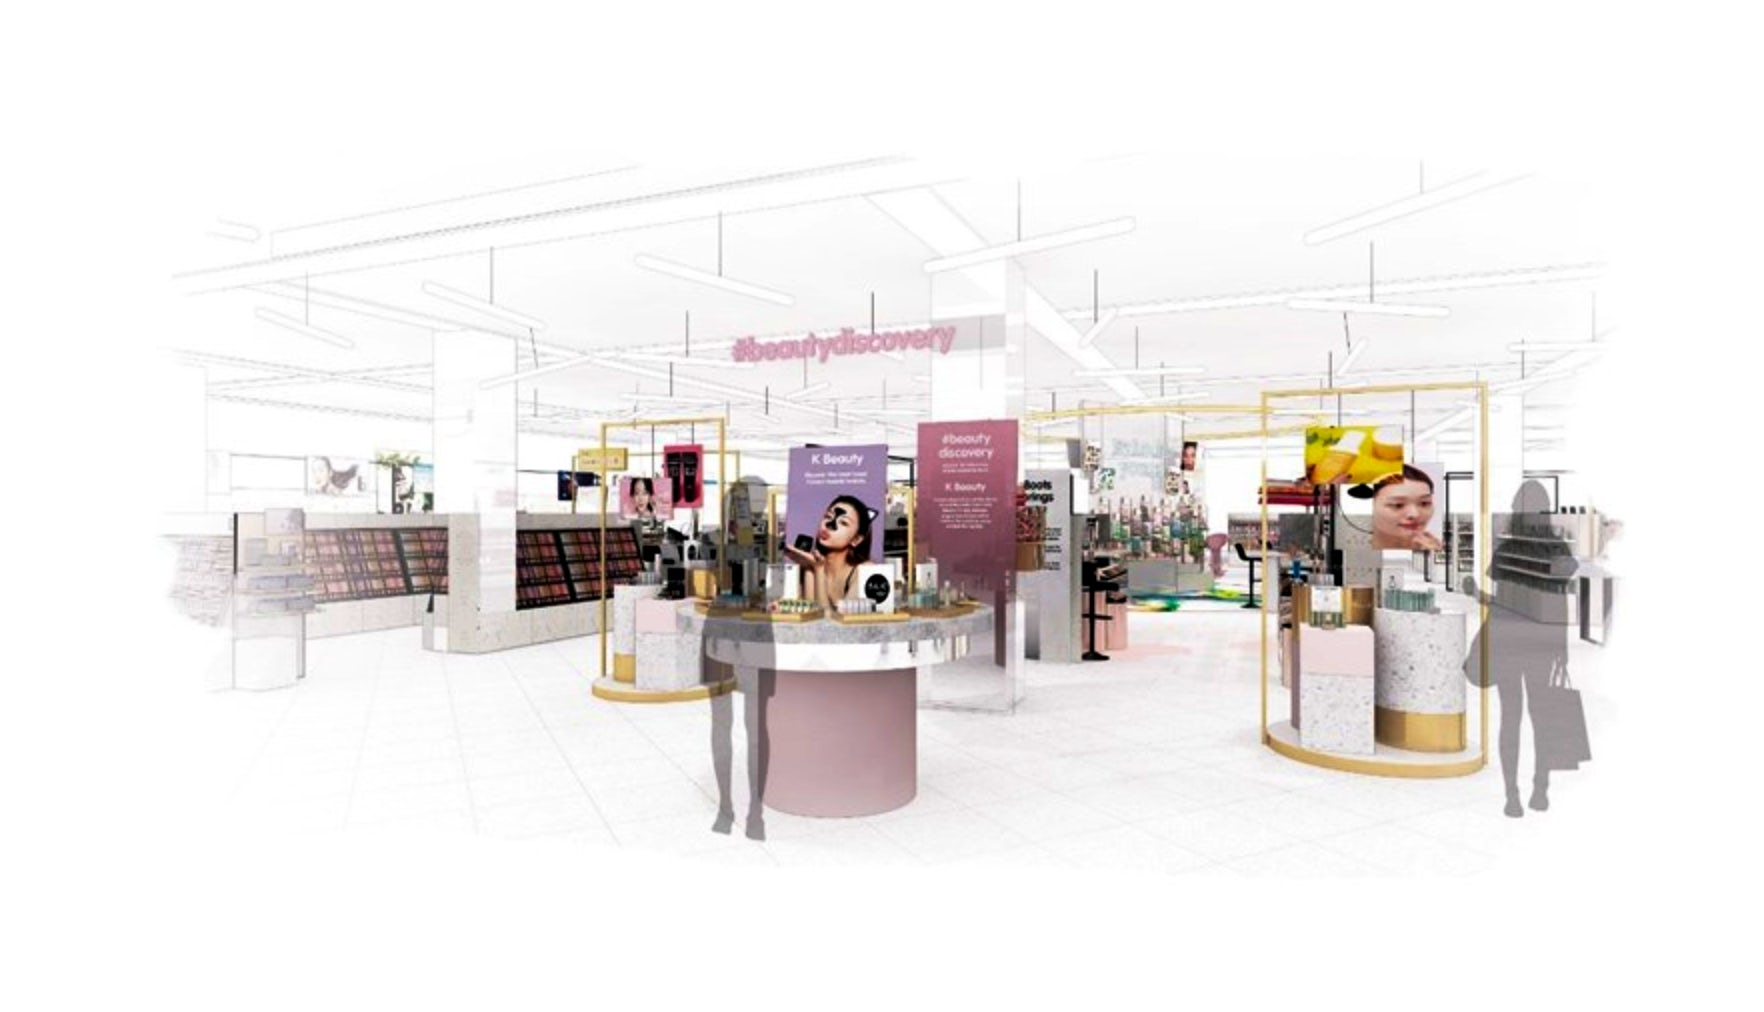 Boots UK to revamp store experience to compete with new beauty rivals – Econsultancy